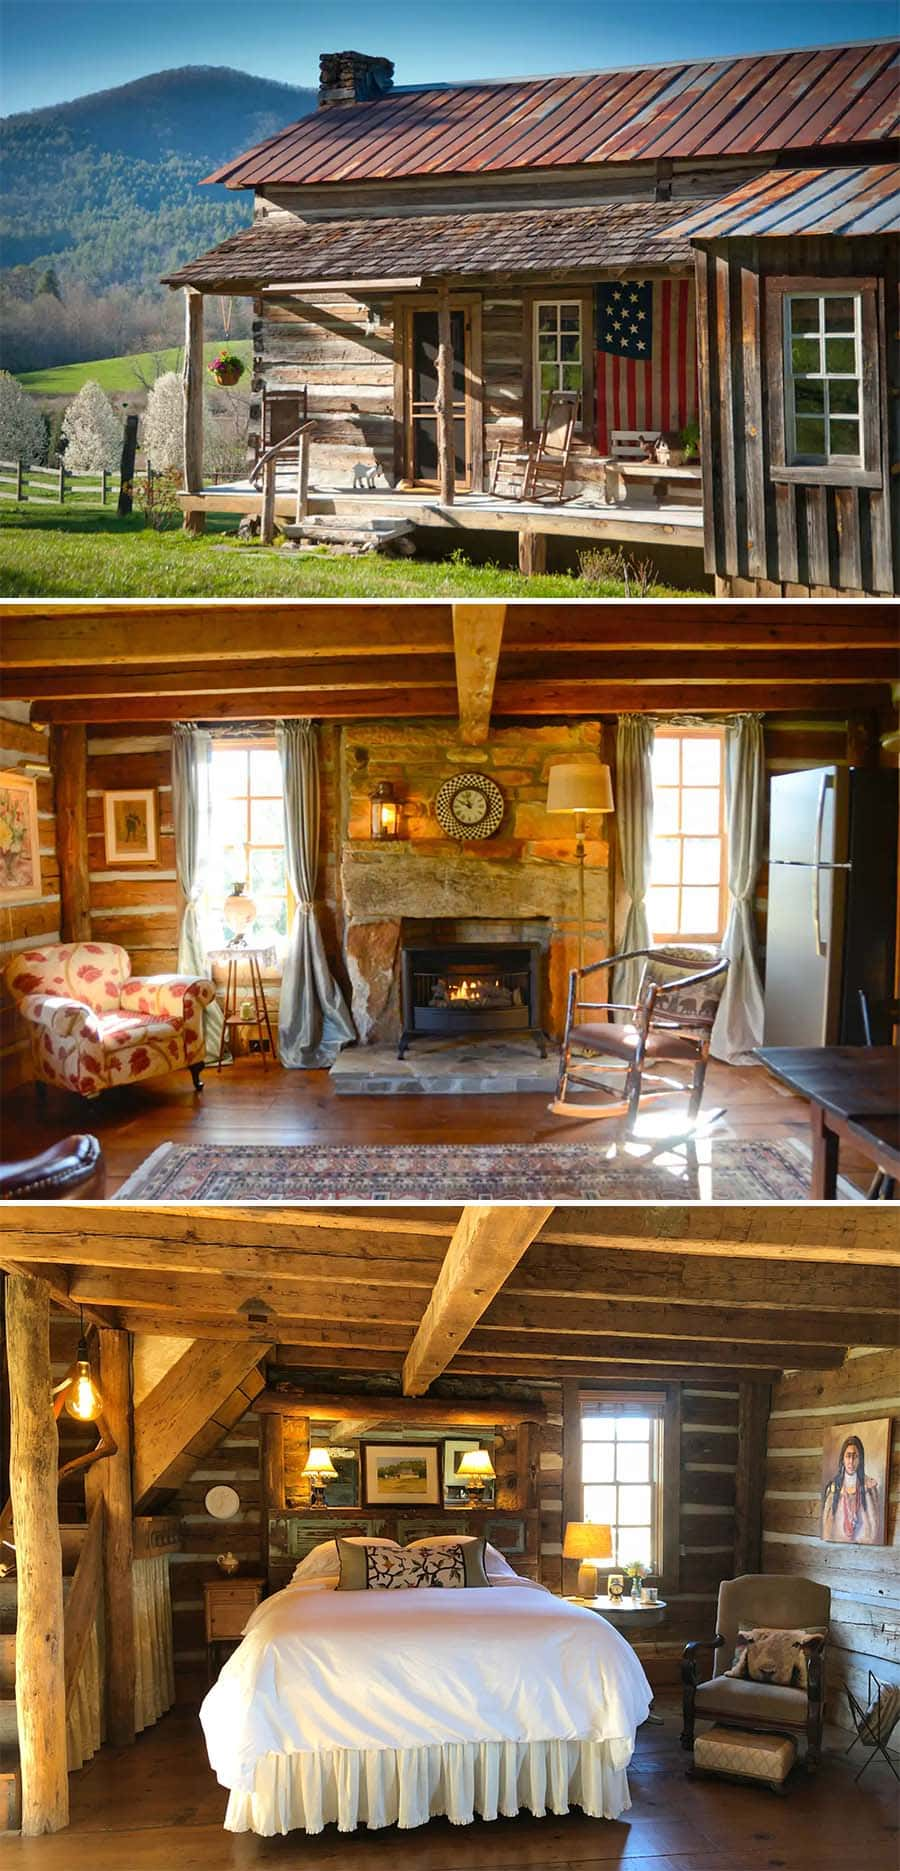 Authentic 1880s log cabin airbnb